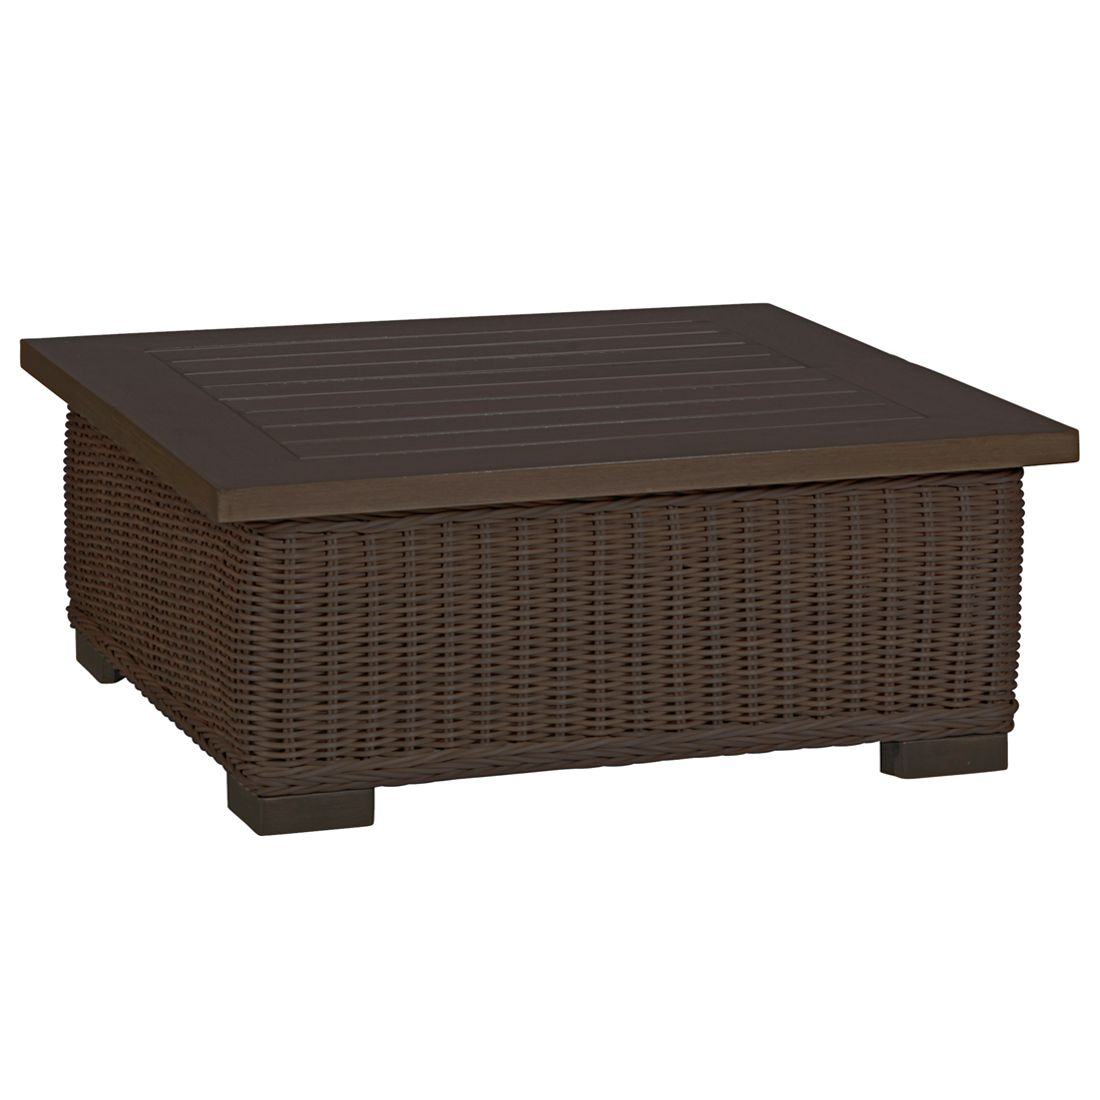 Rustic wicker outdoor coffee tables for Outdoor coffee table